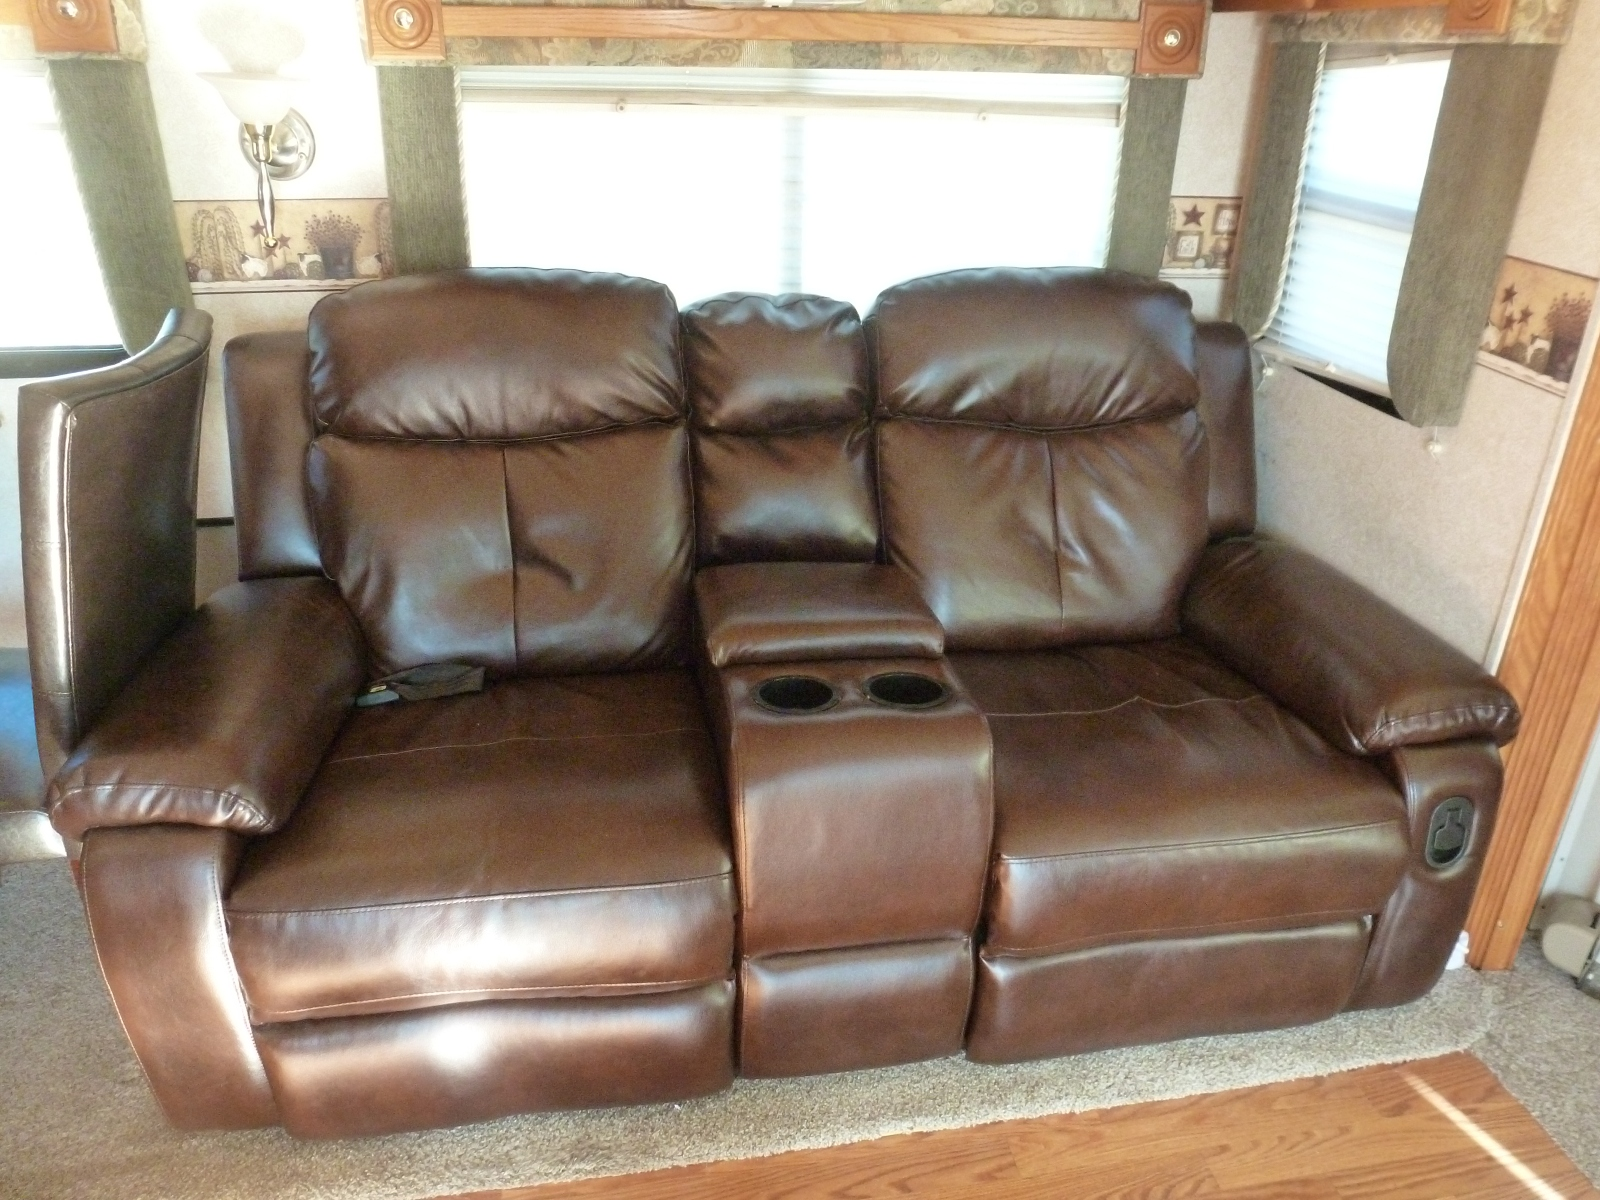 used oak table and chairs office stool chair with wheels gulf stream crescendo 8356   motorhomes for sale by owner